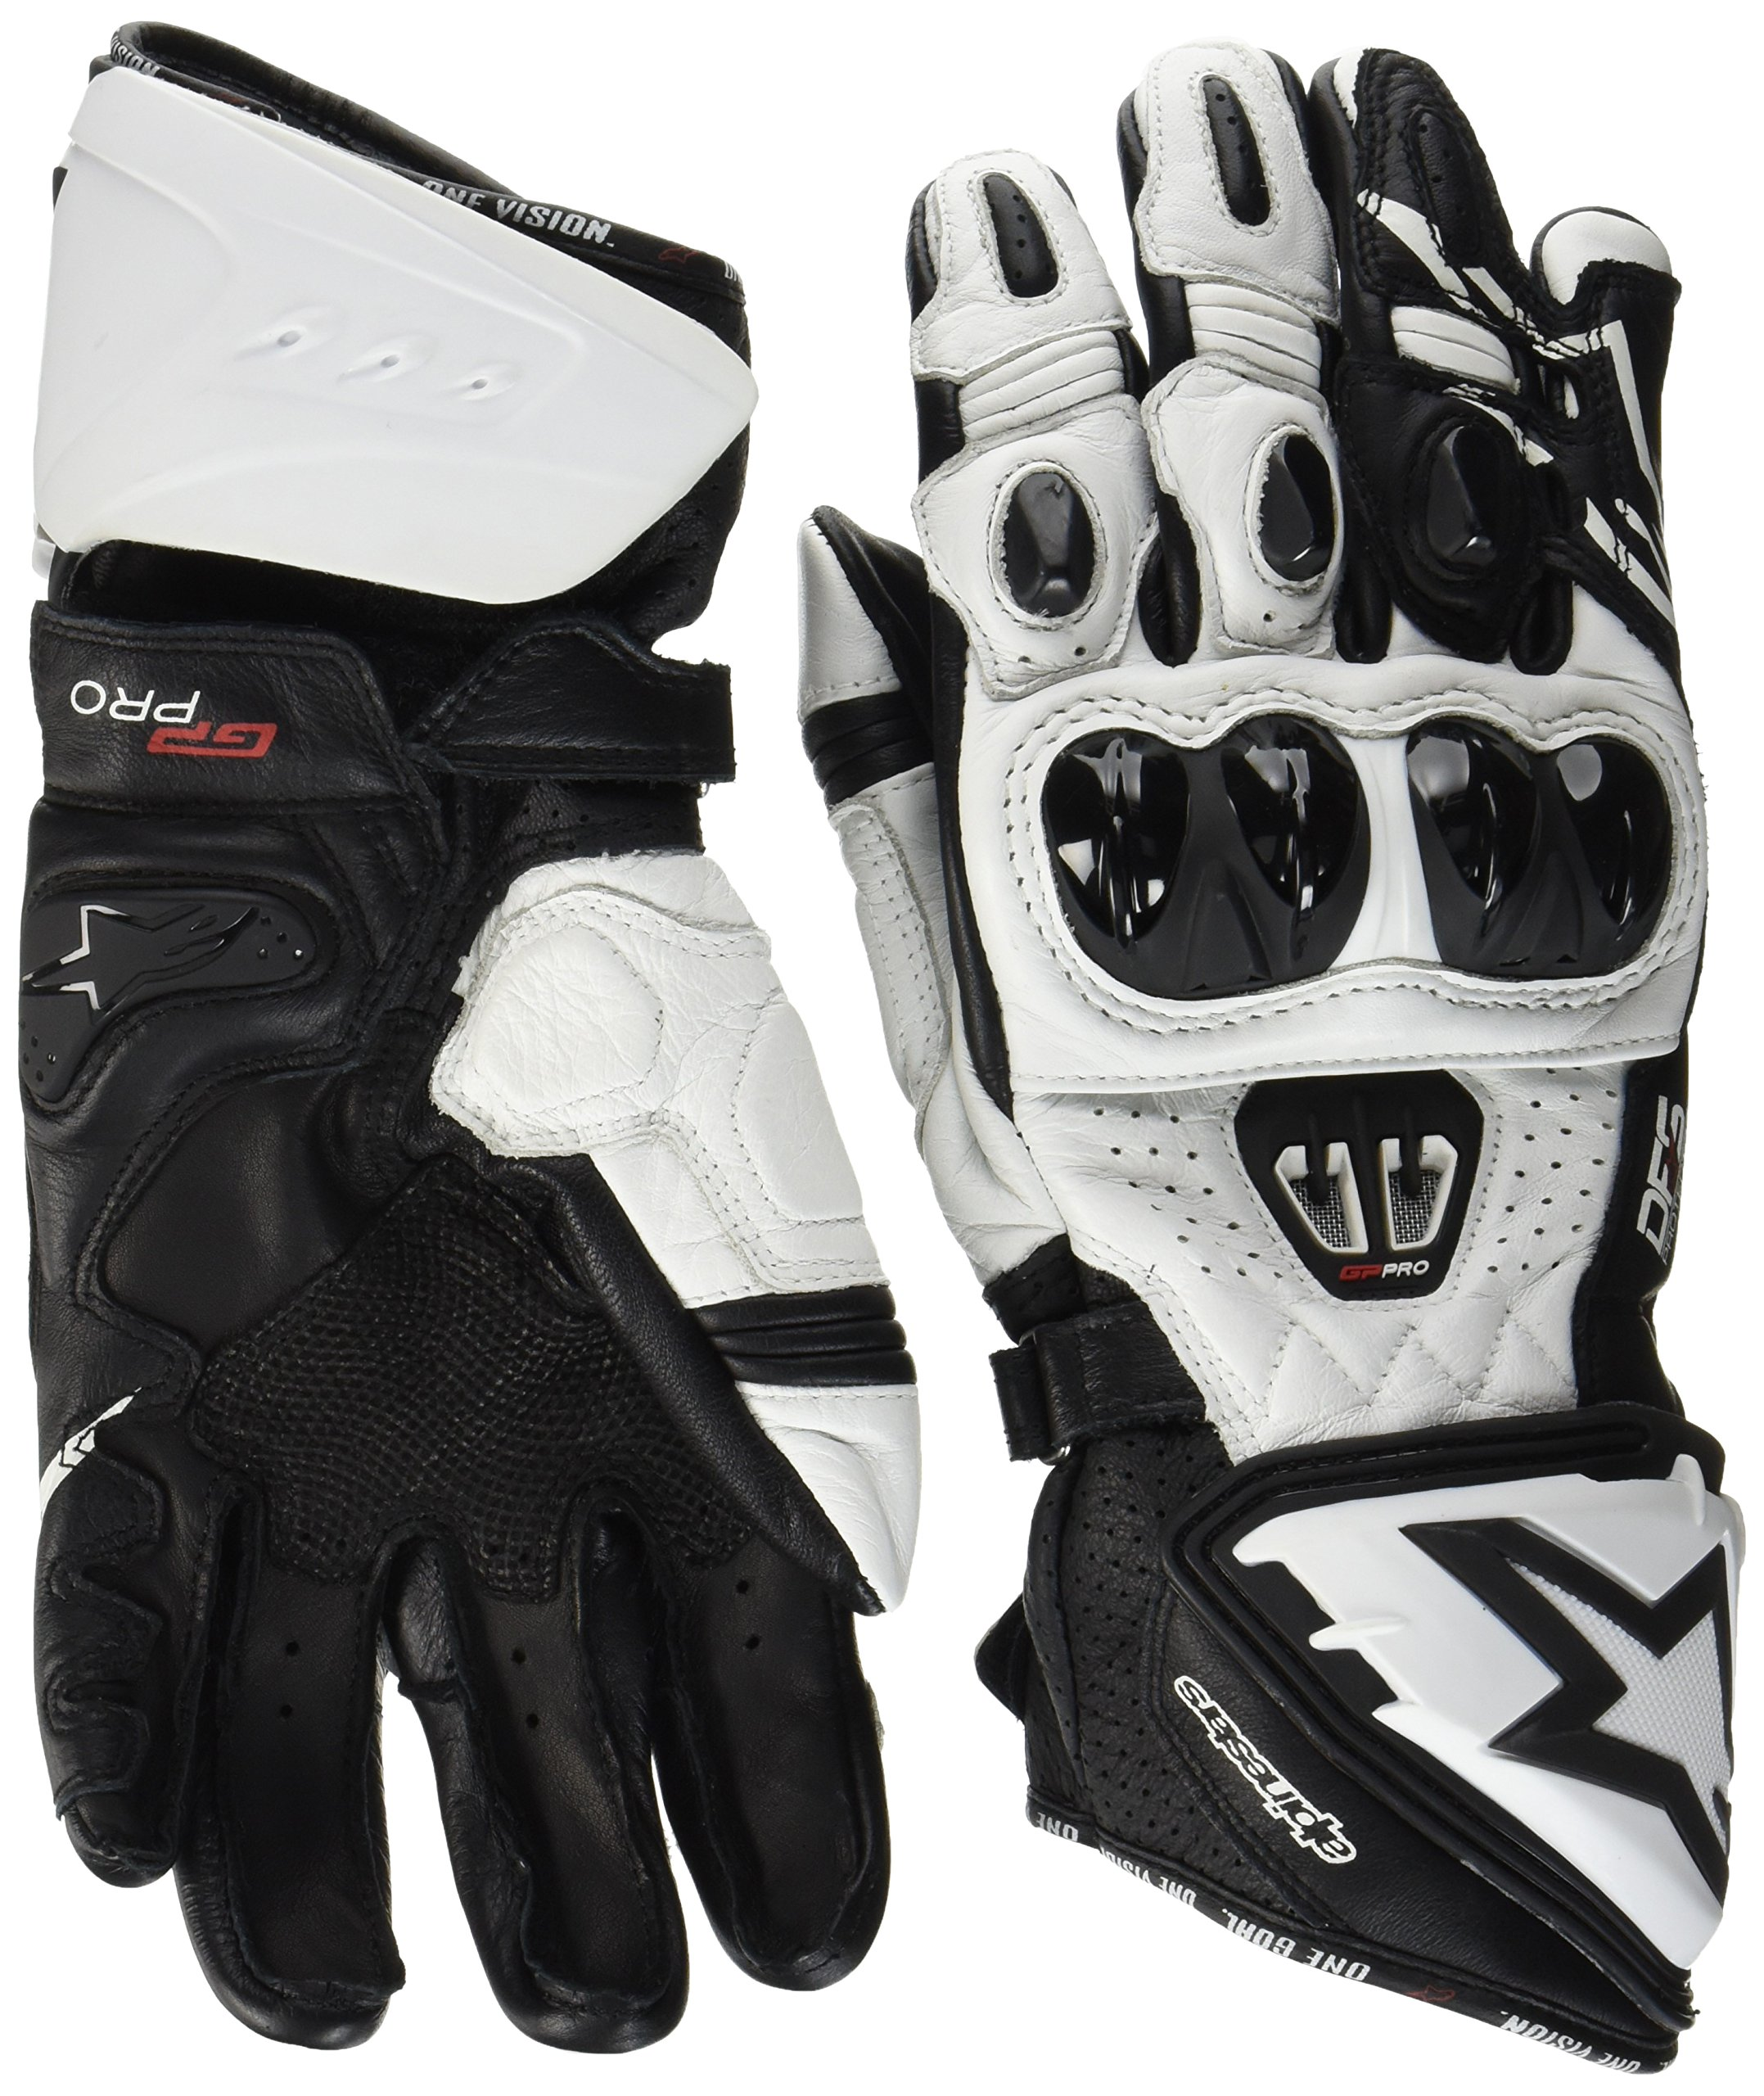 Alpinestars Men's GP Pro R2 Leather Glove (Black/White, Medium)